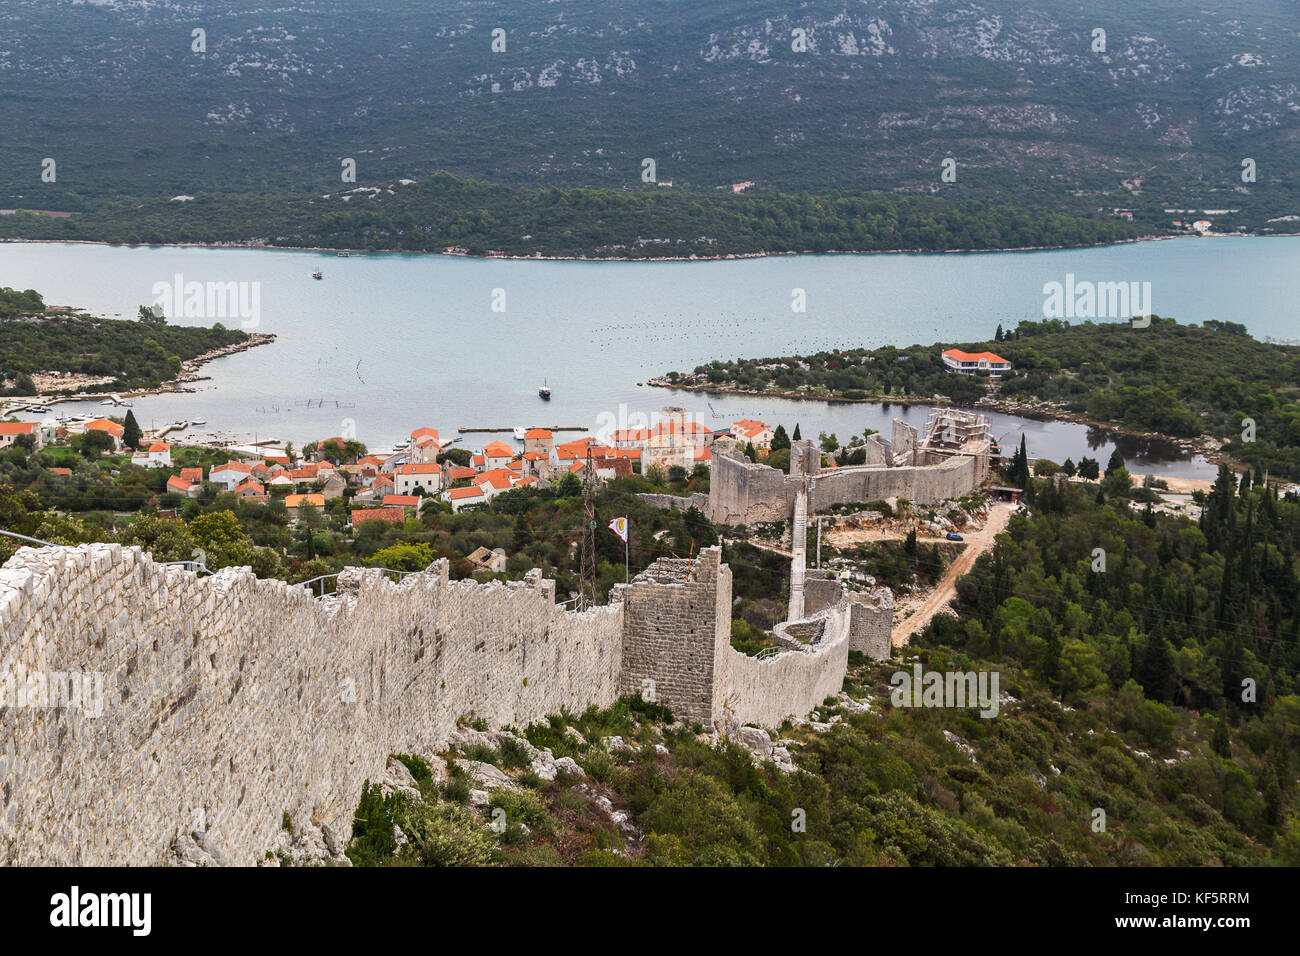 Looking down one side of the long walls of Ston (Croatia) towards Mali Ston, a town rich in oyster and mussel farming. - Stock Image